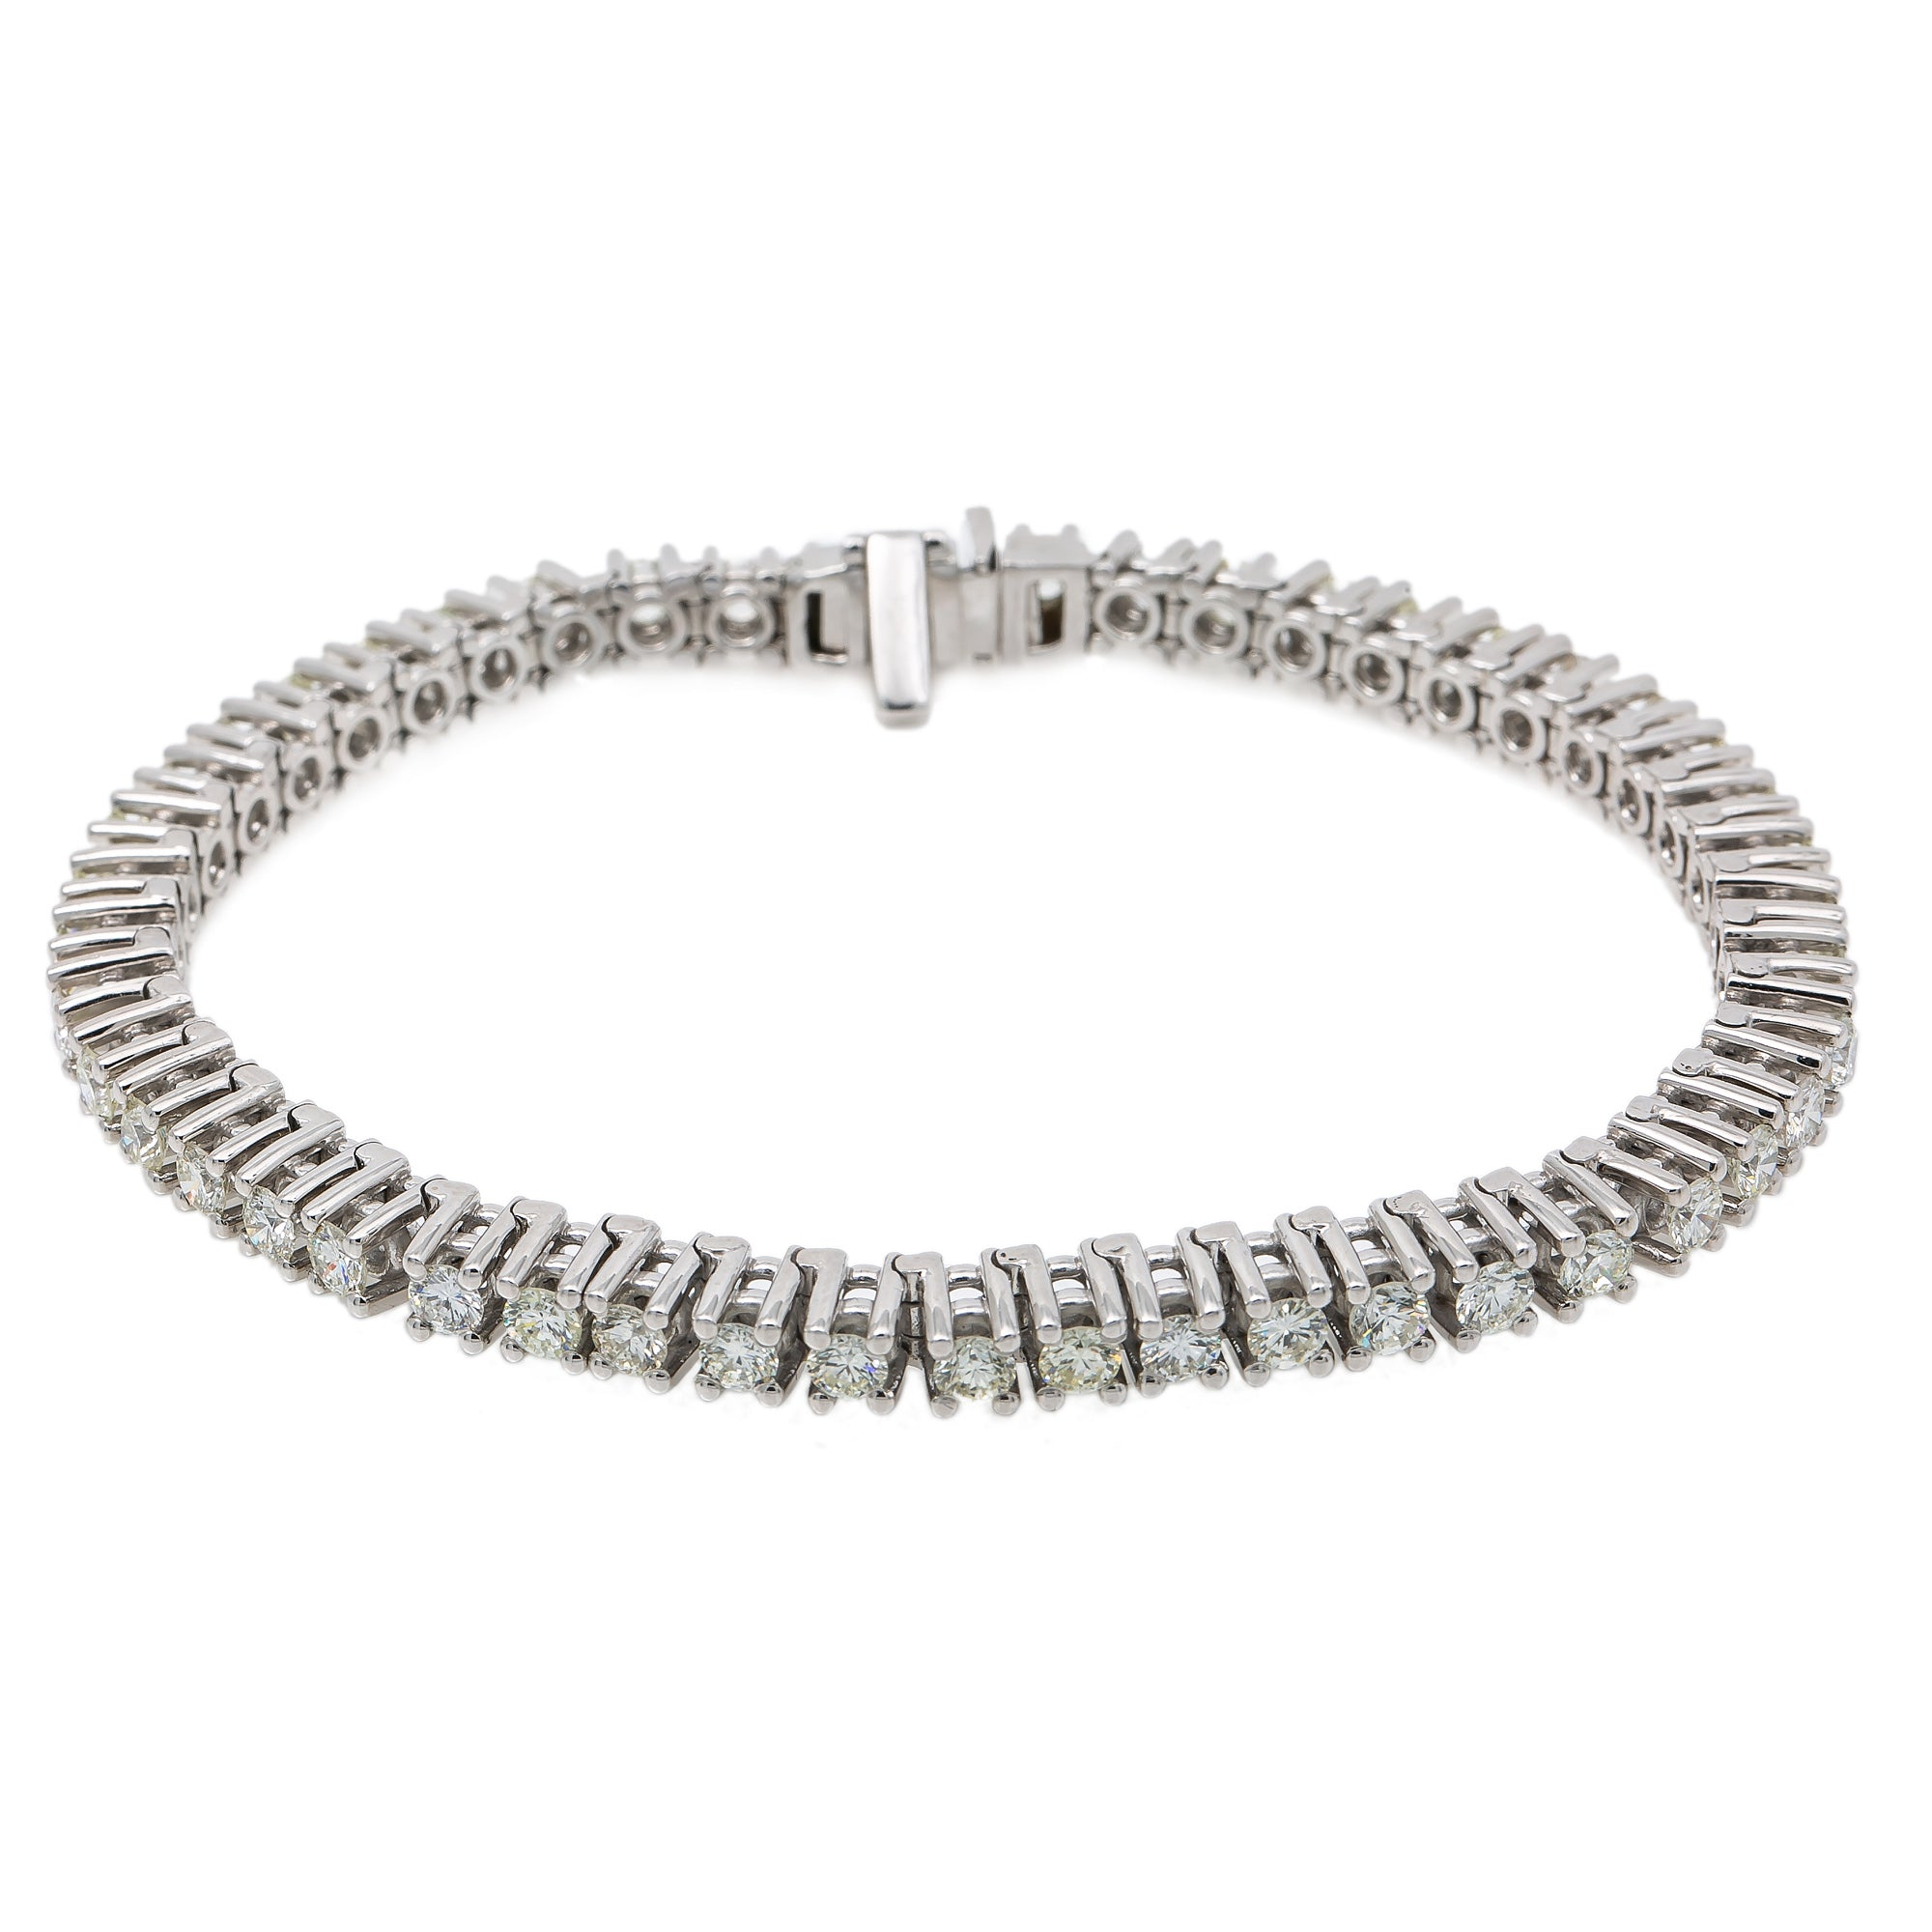 14K WHITE GOLD WOMEN'S BRACELET WITH 12.50 CT DIAMONDS